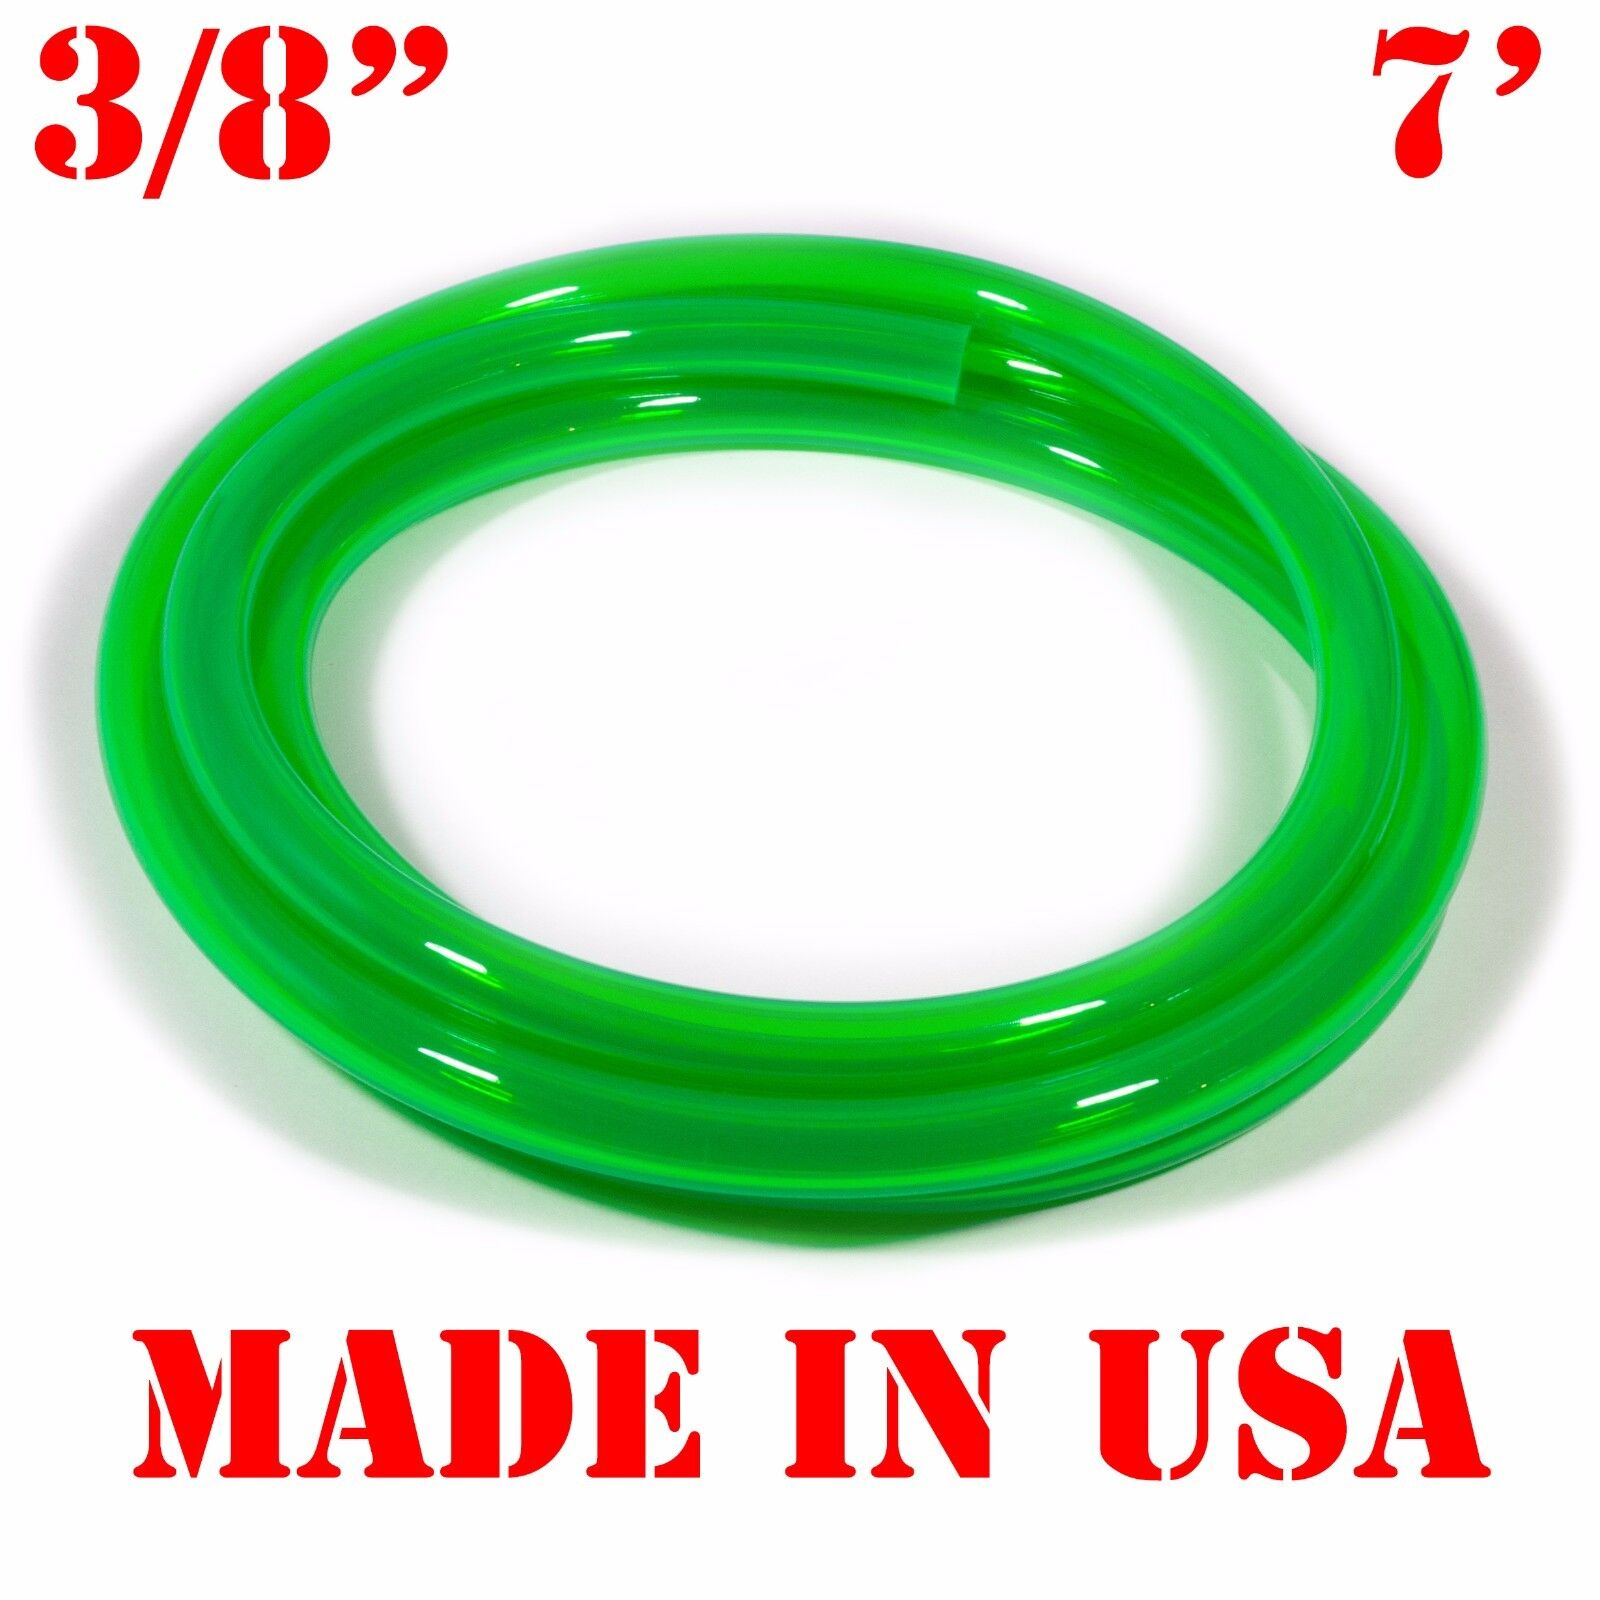 "7 Feet of GREEN 3/8"" (9.5mm) id Fast Flow Fuel Line for Jetski/Kart/Cycle"